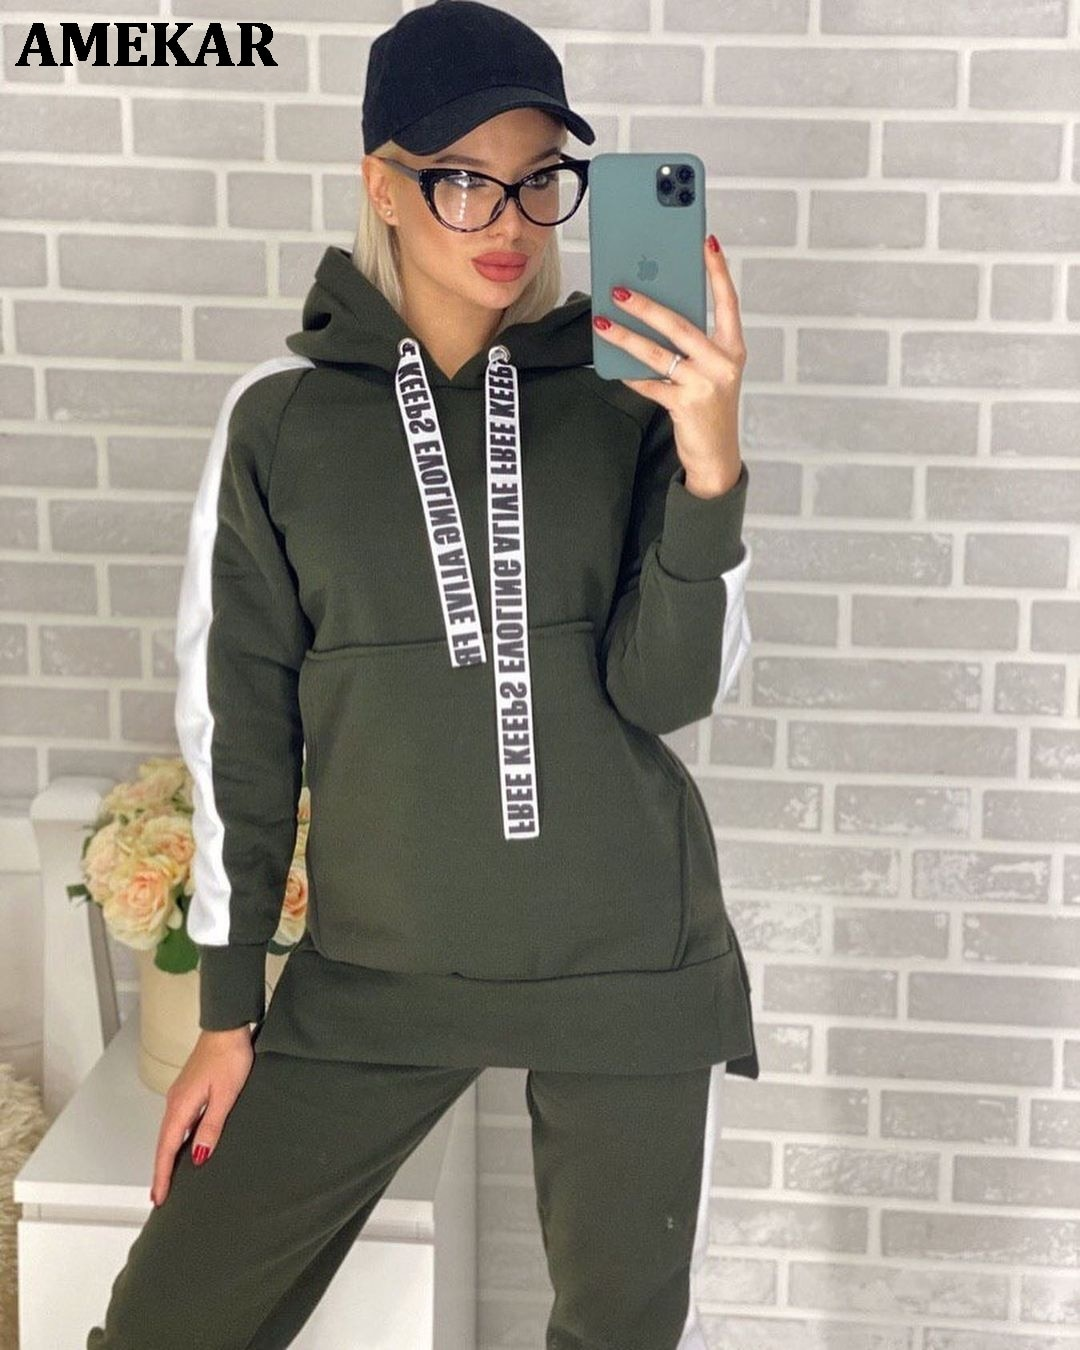 Hooded Tracksuit Women Two Piece Set Autumn Winter Clothes Side Striped Hoodies Sweatshirt Top + Pan